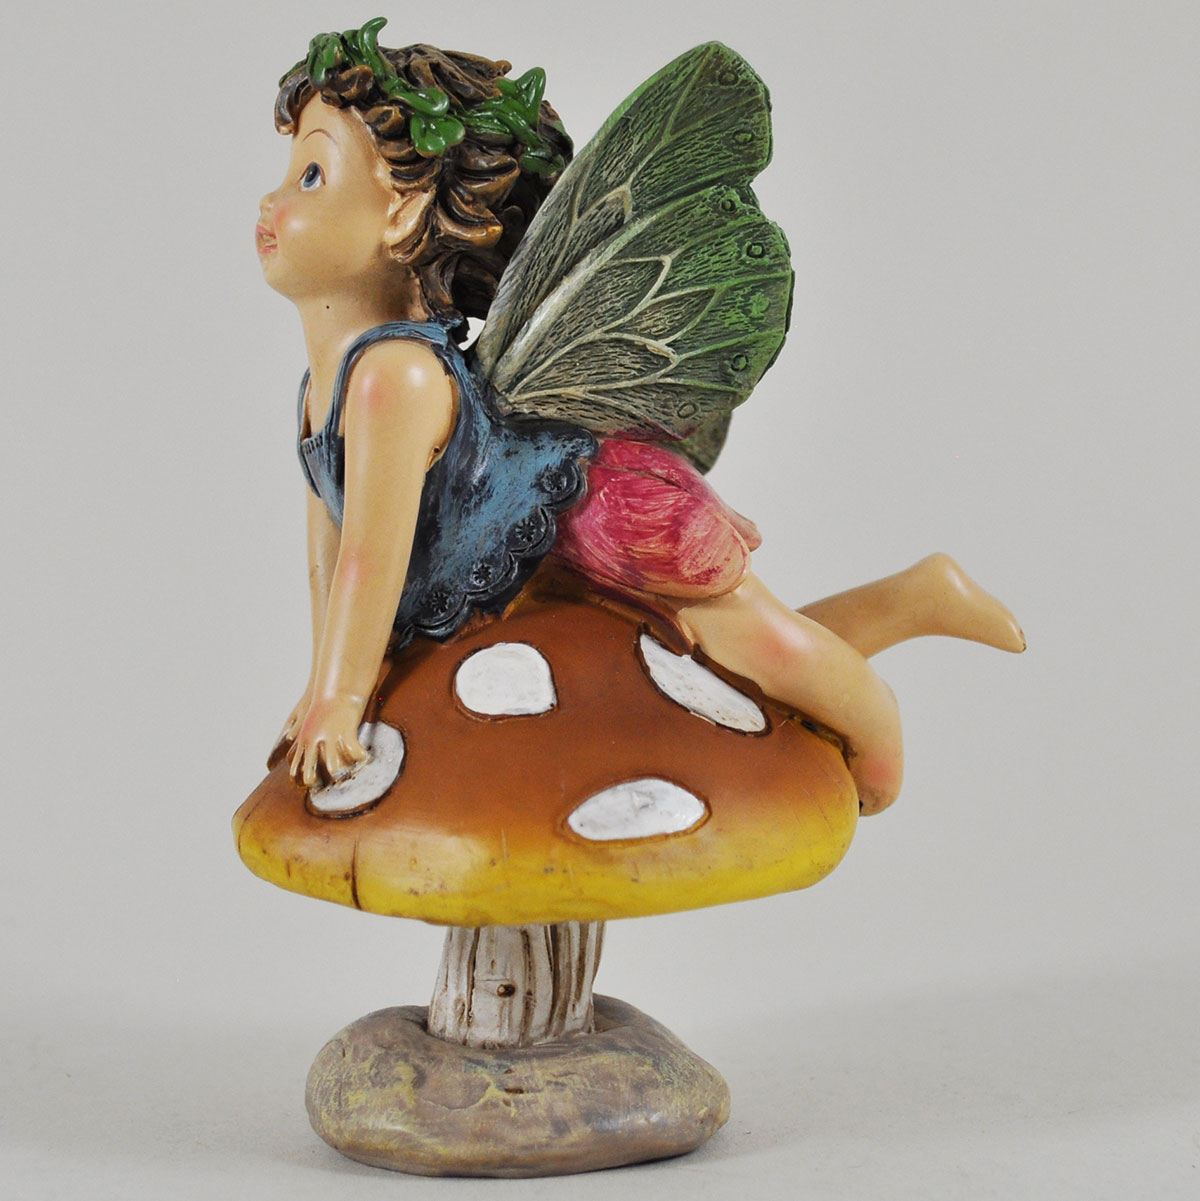 Flower Fairies Sitting On Mushroom Fairygardensuk Co Uk